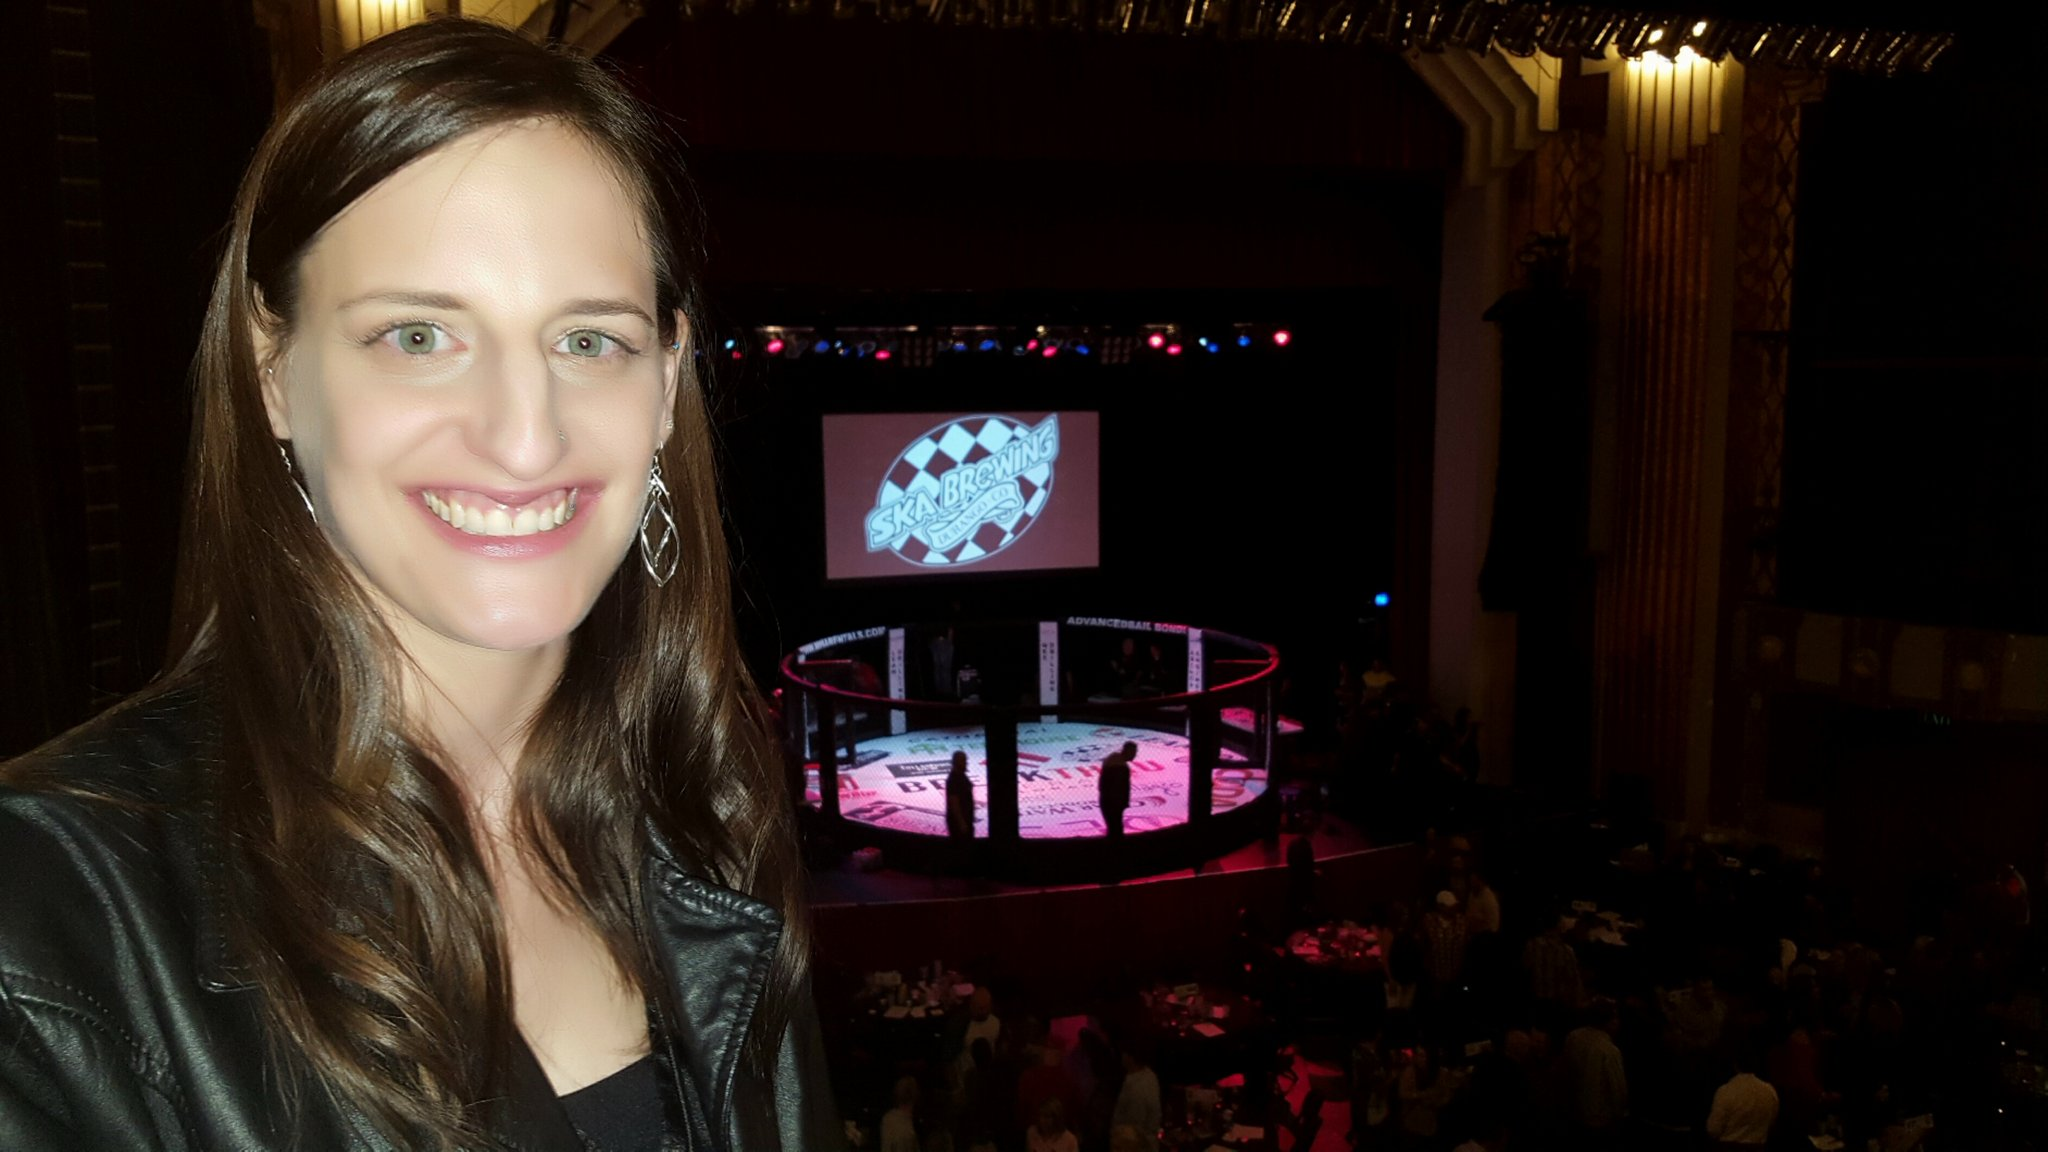 Paramount Theatre is a Great Place to Watch MMA